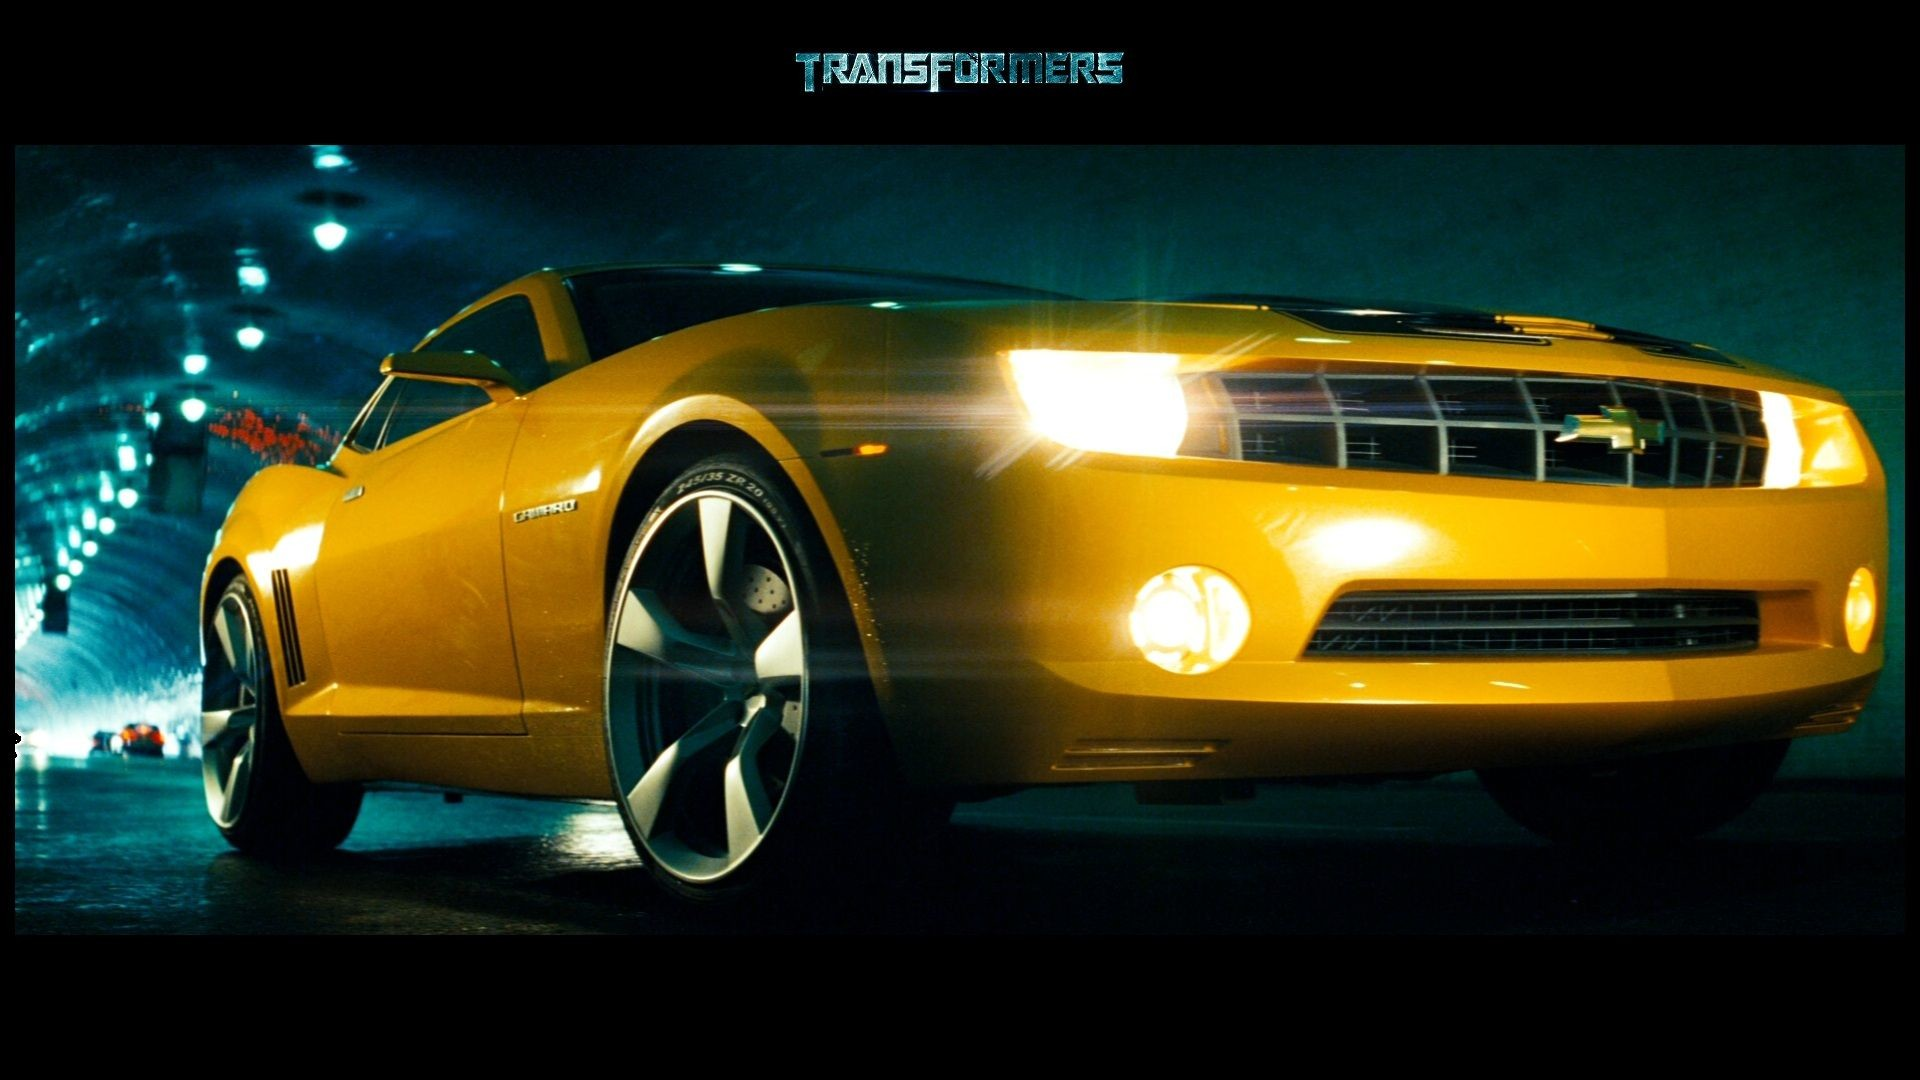 Res: 1920x1080, Transformers 1080p